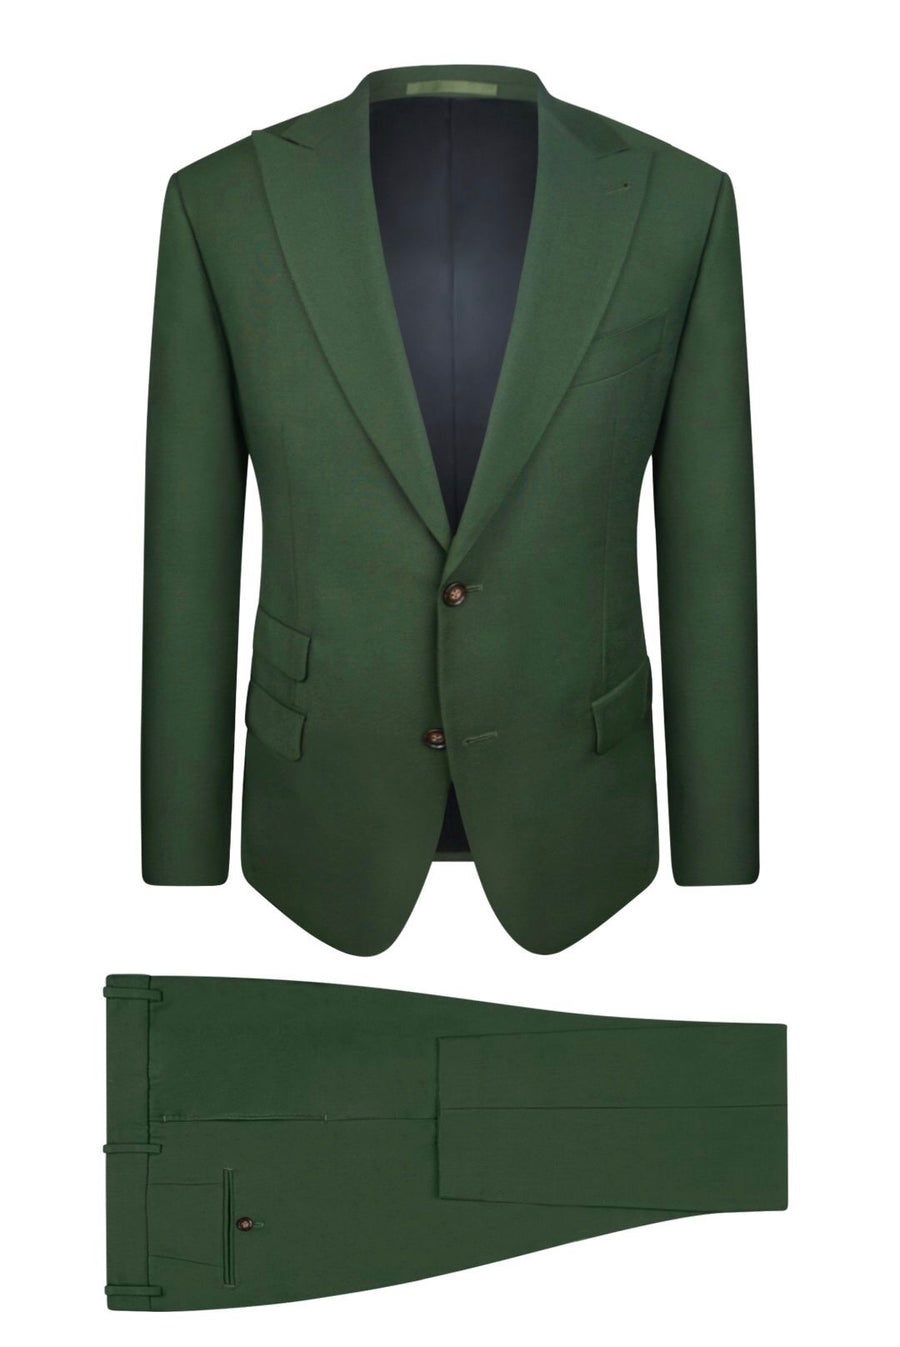 Forest Green Suit Jacket